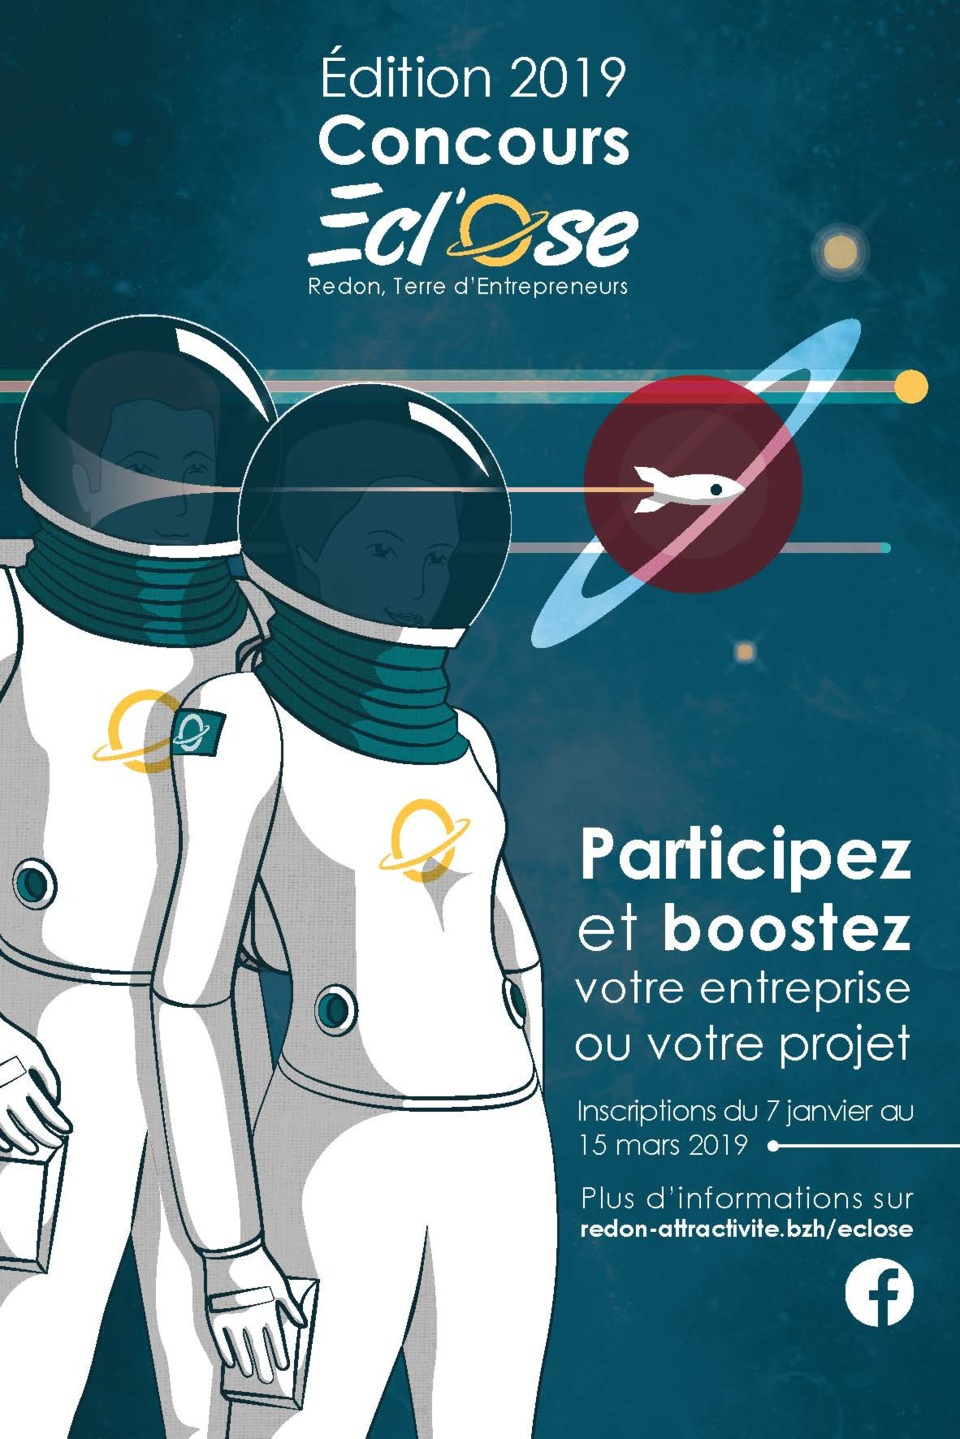 Concours Ecl'Ose 2019